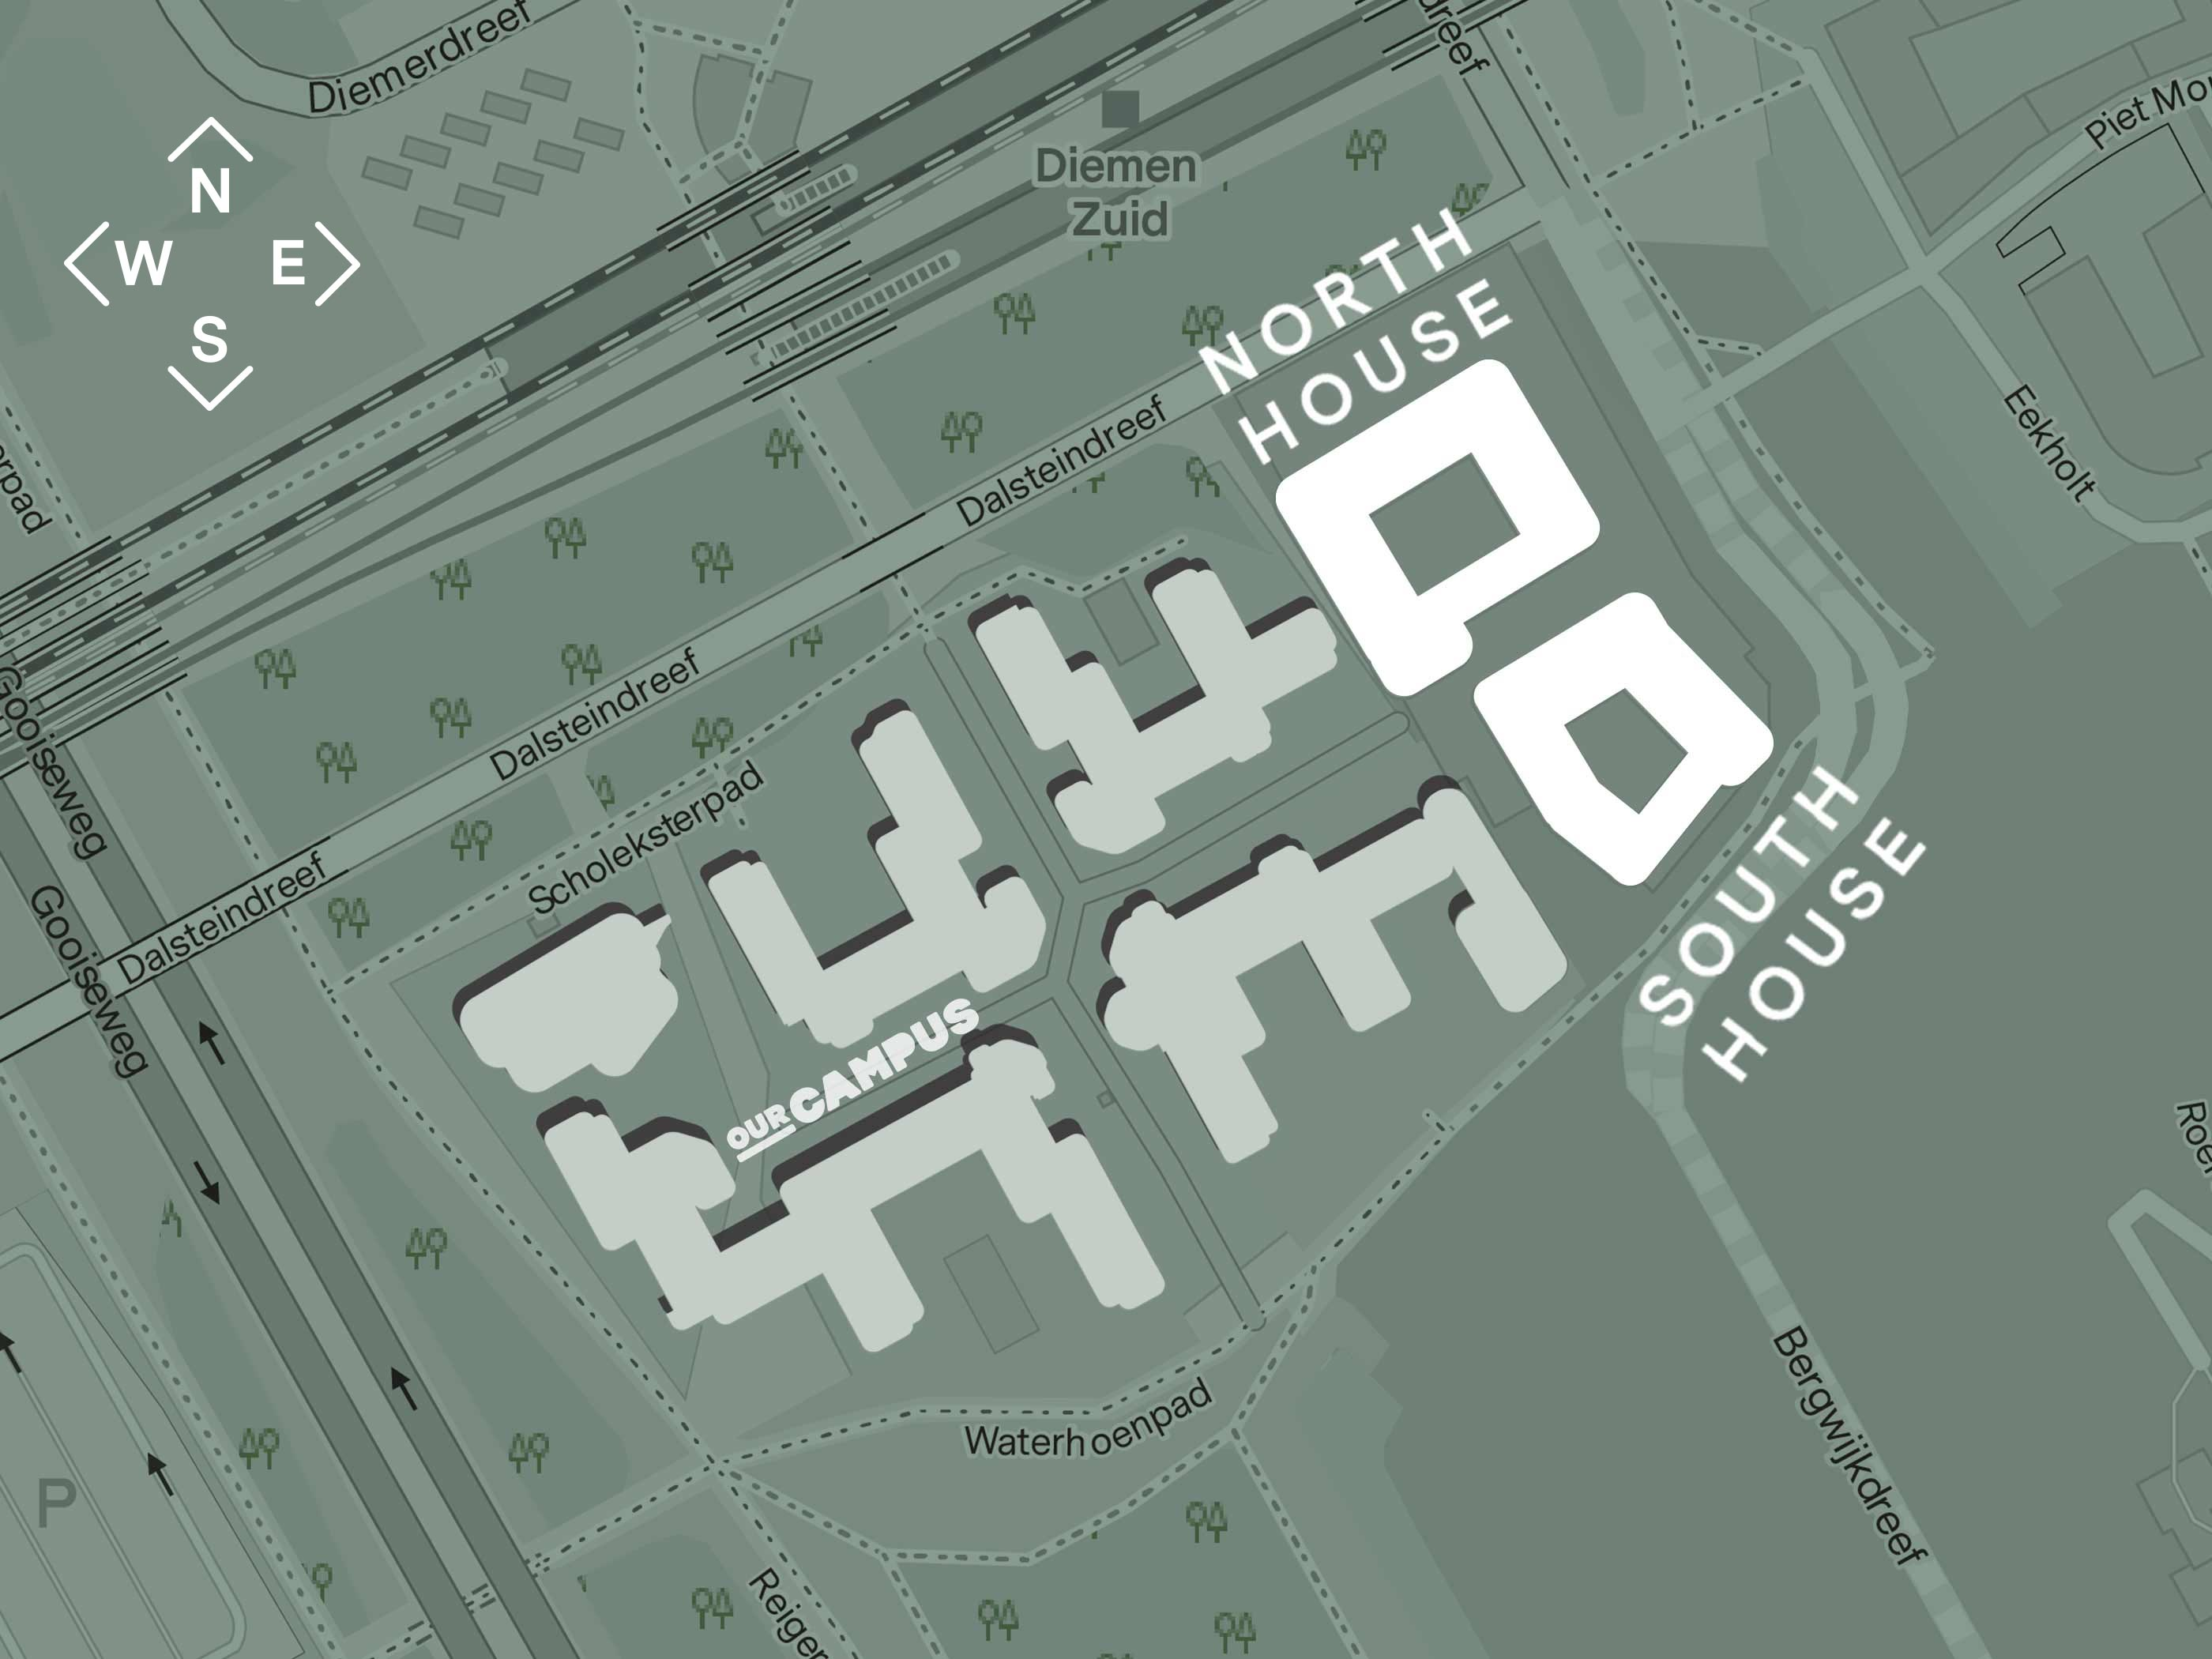 Map of OurDomain North House and South House